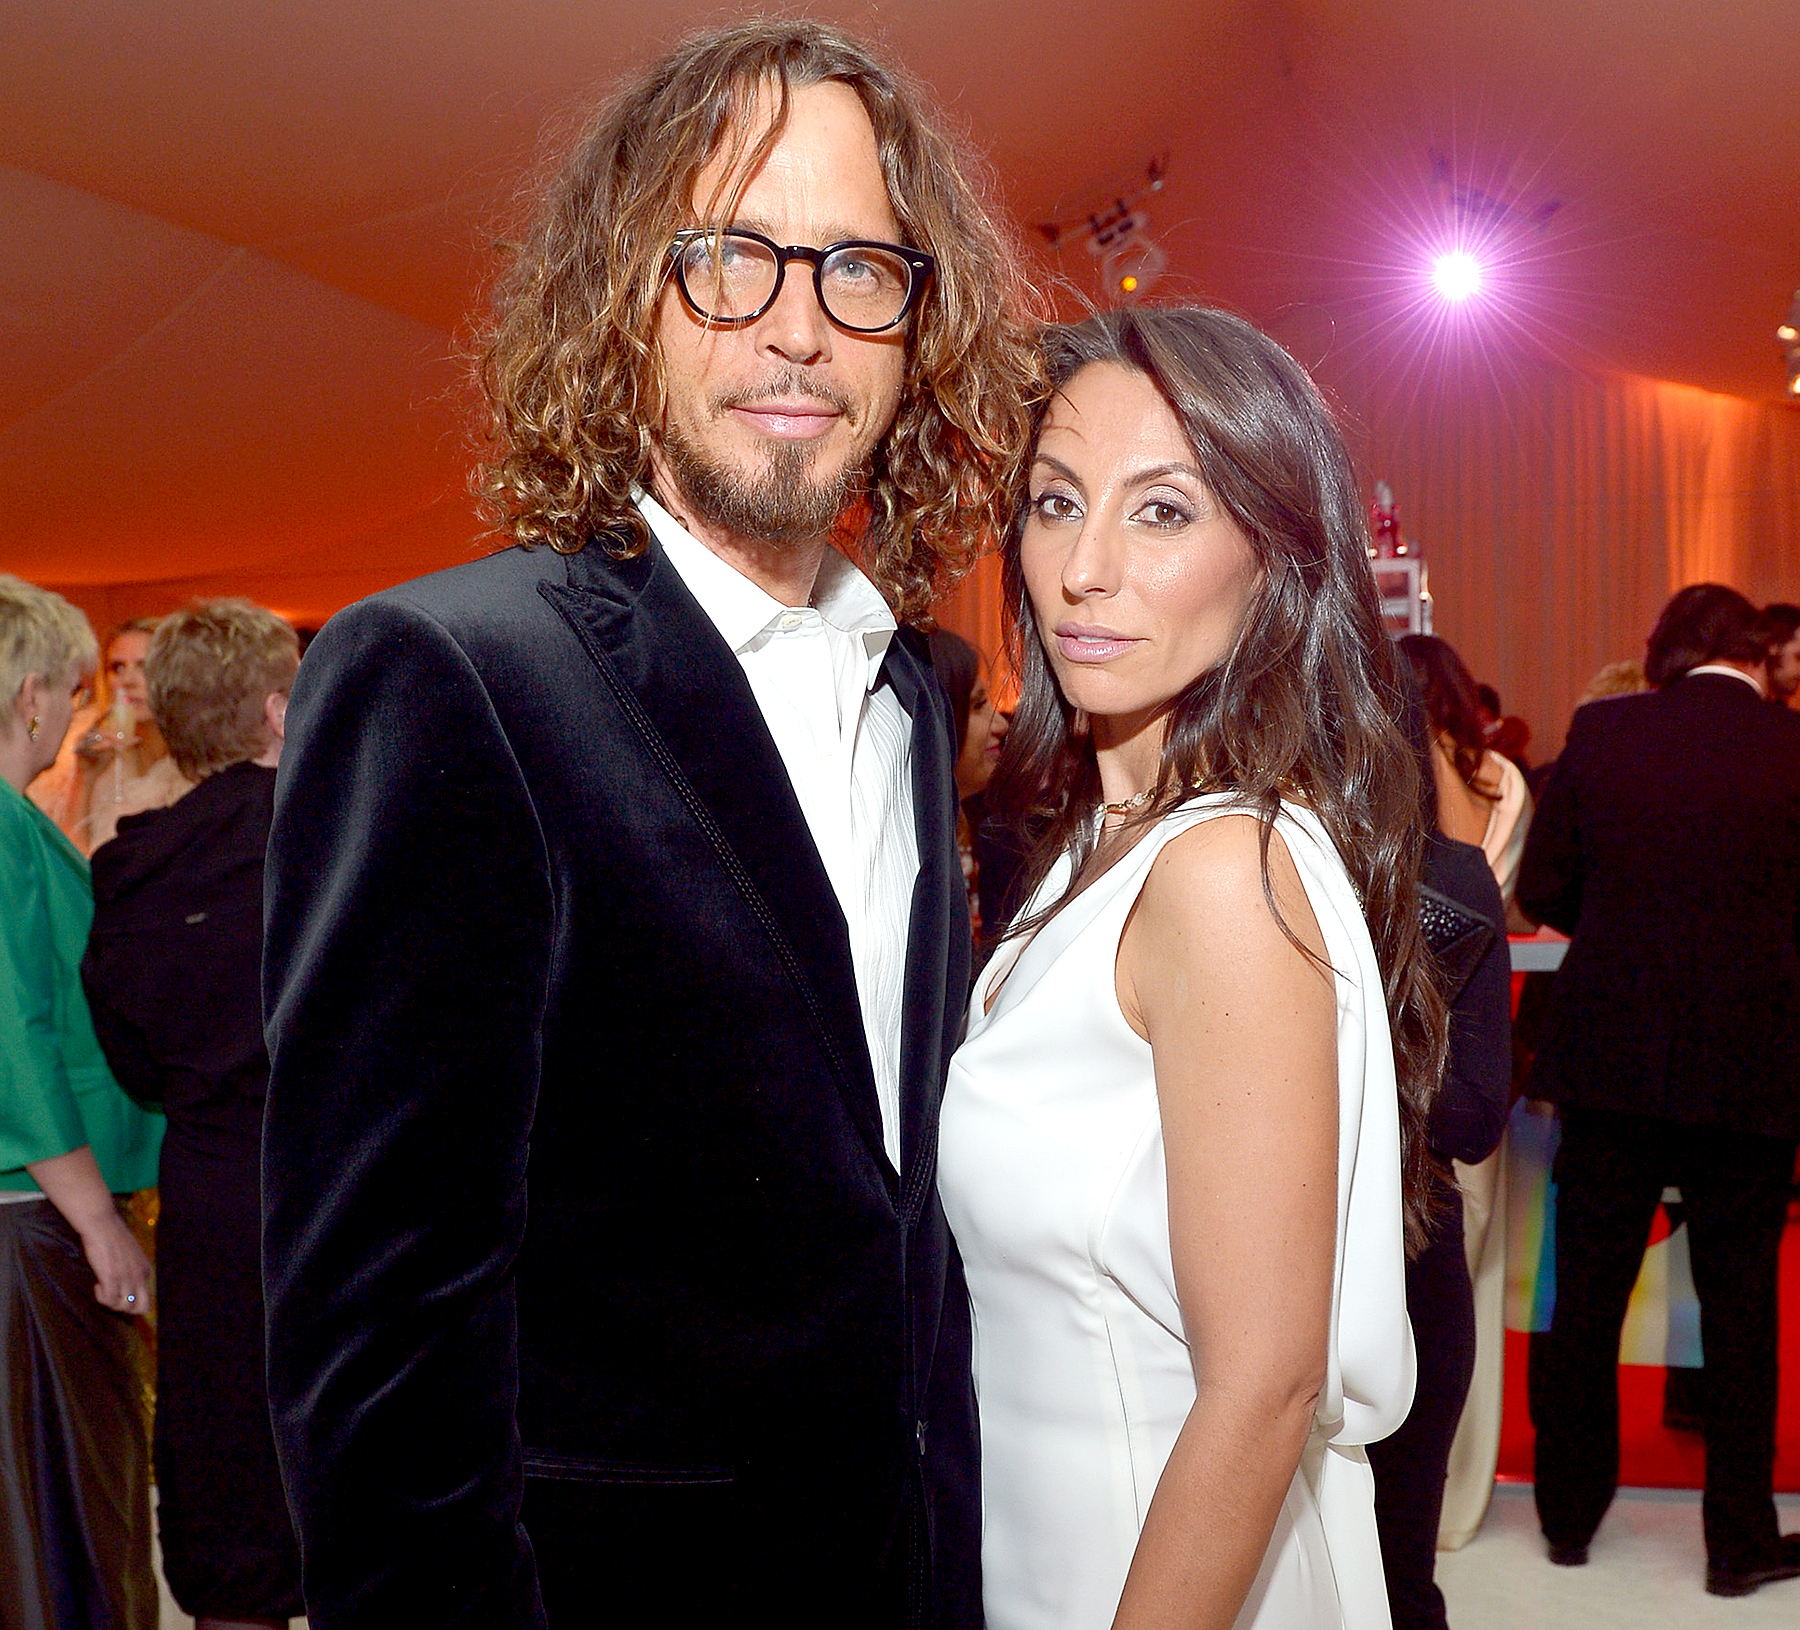 Chris Cornell and Vicky Cornell attend Neuro at 21st Annual Elton John AIDS Foundation Academy Awards Viewing Party at West Hollywood Park on February 24, 2013.